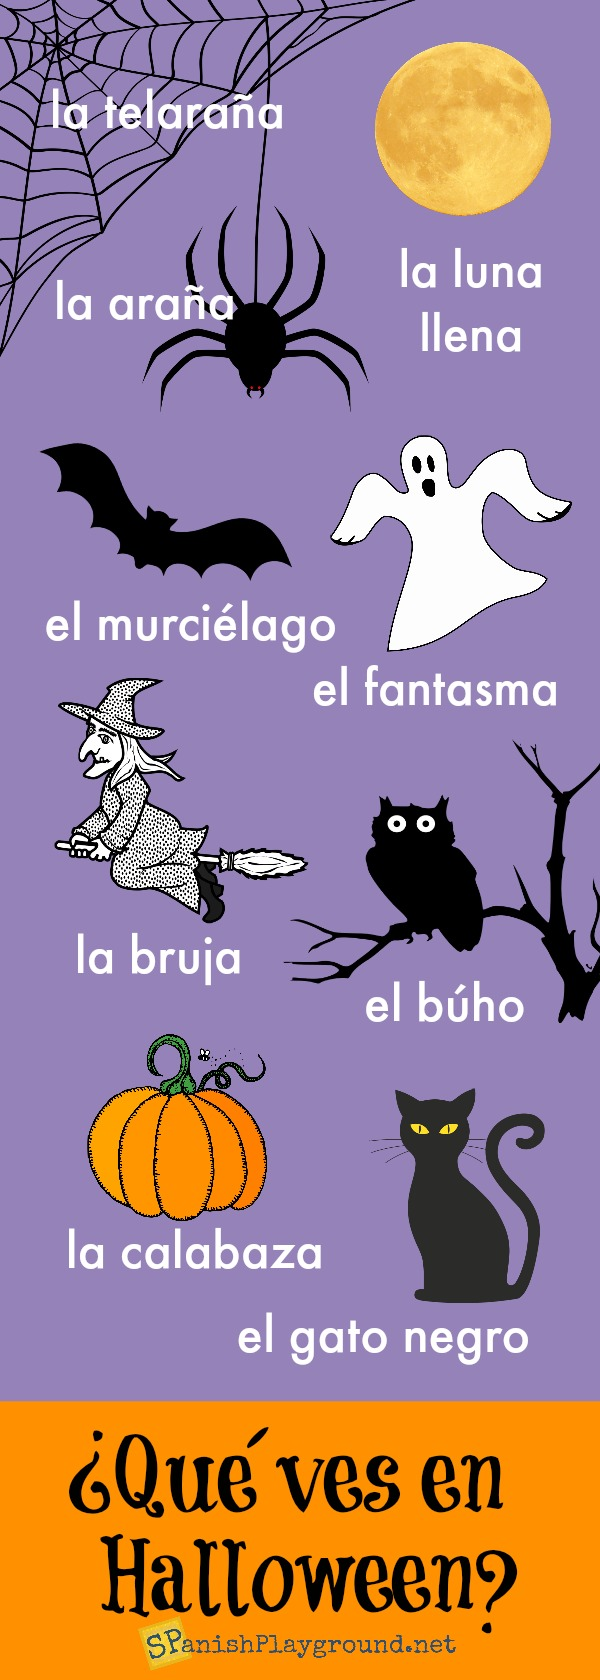 Spanish Halloween infographic to practice common vocabulary in the context of the holiday.